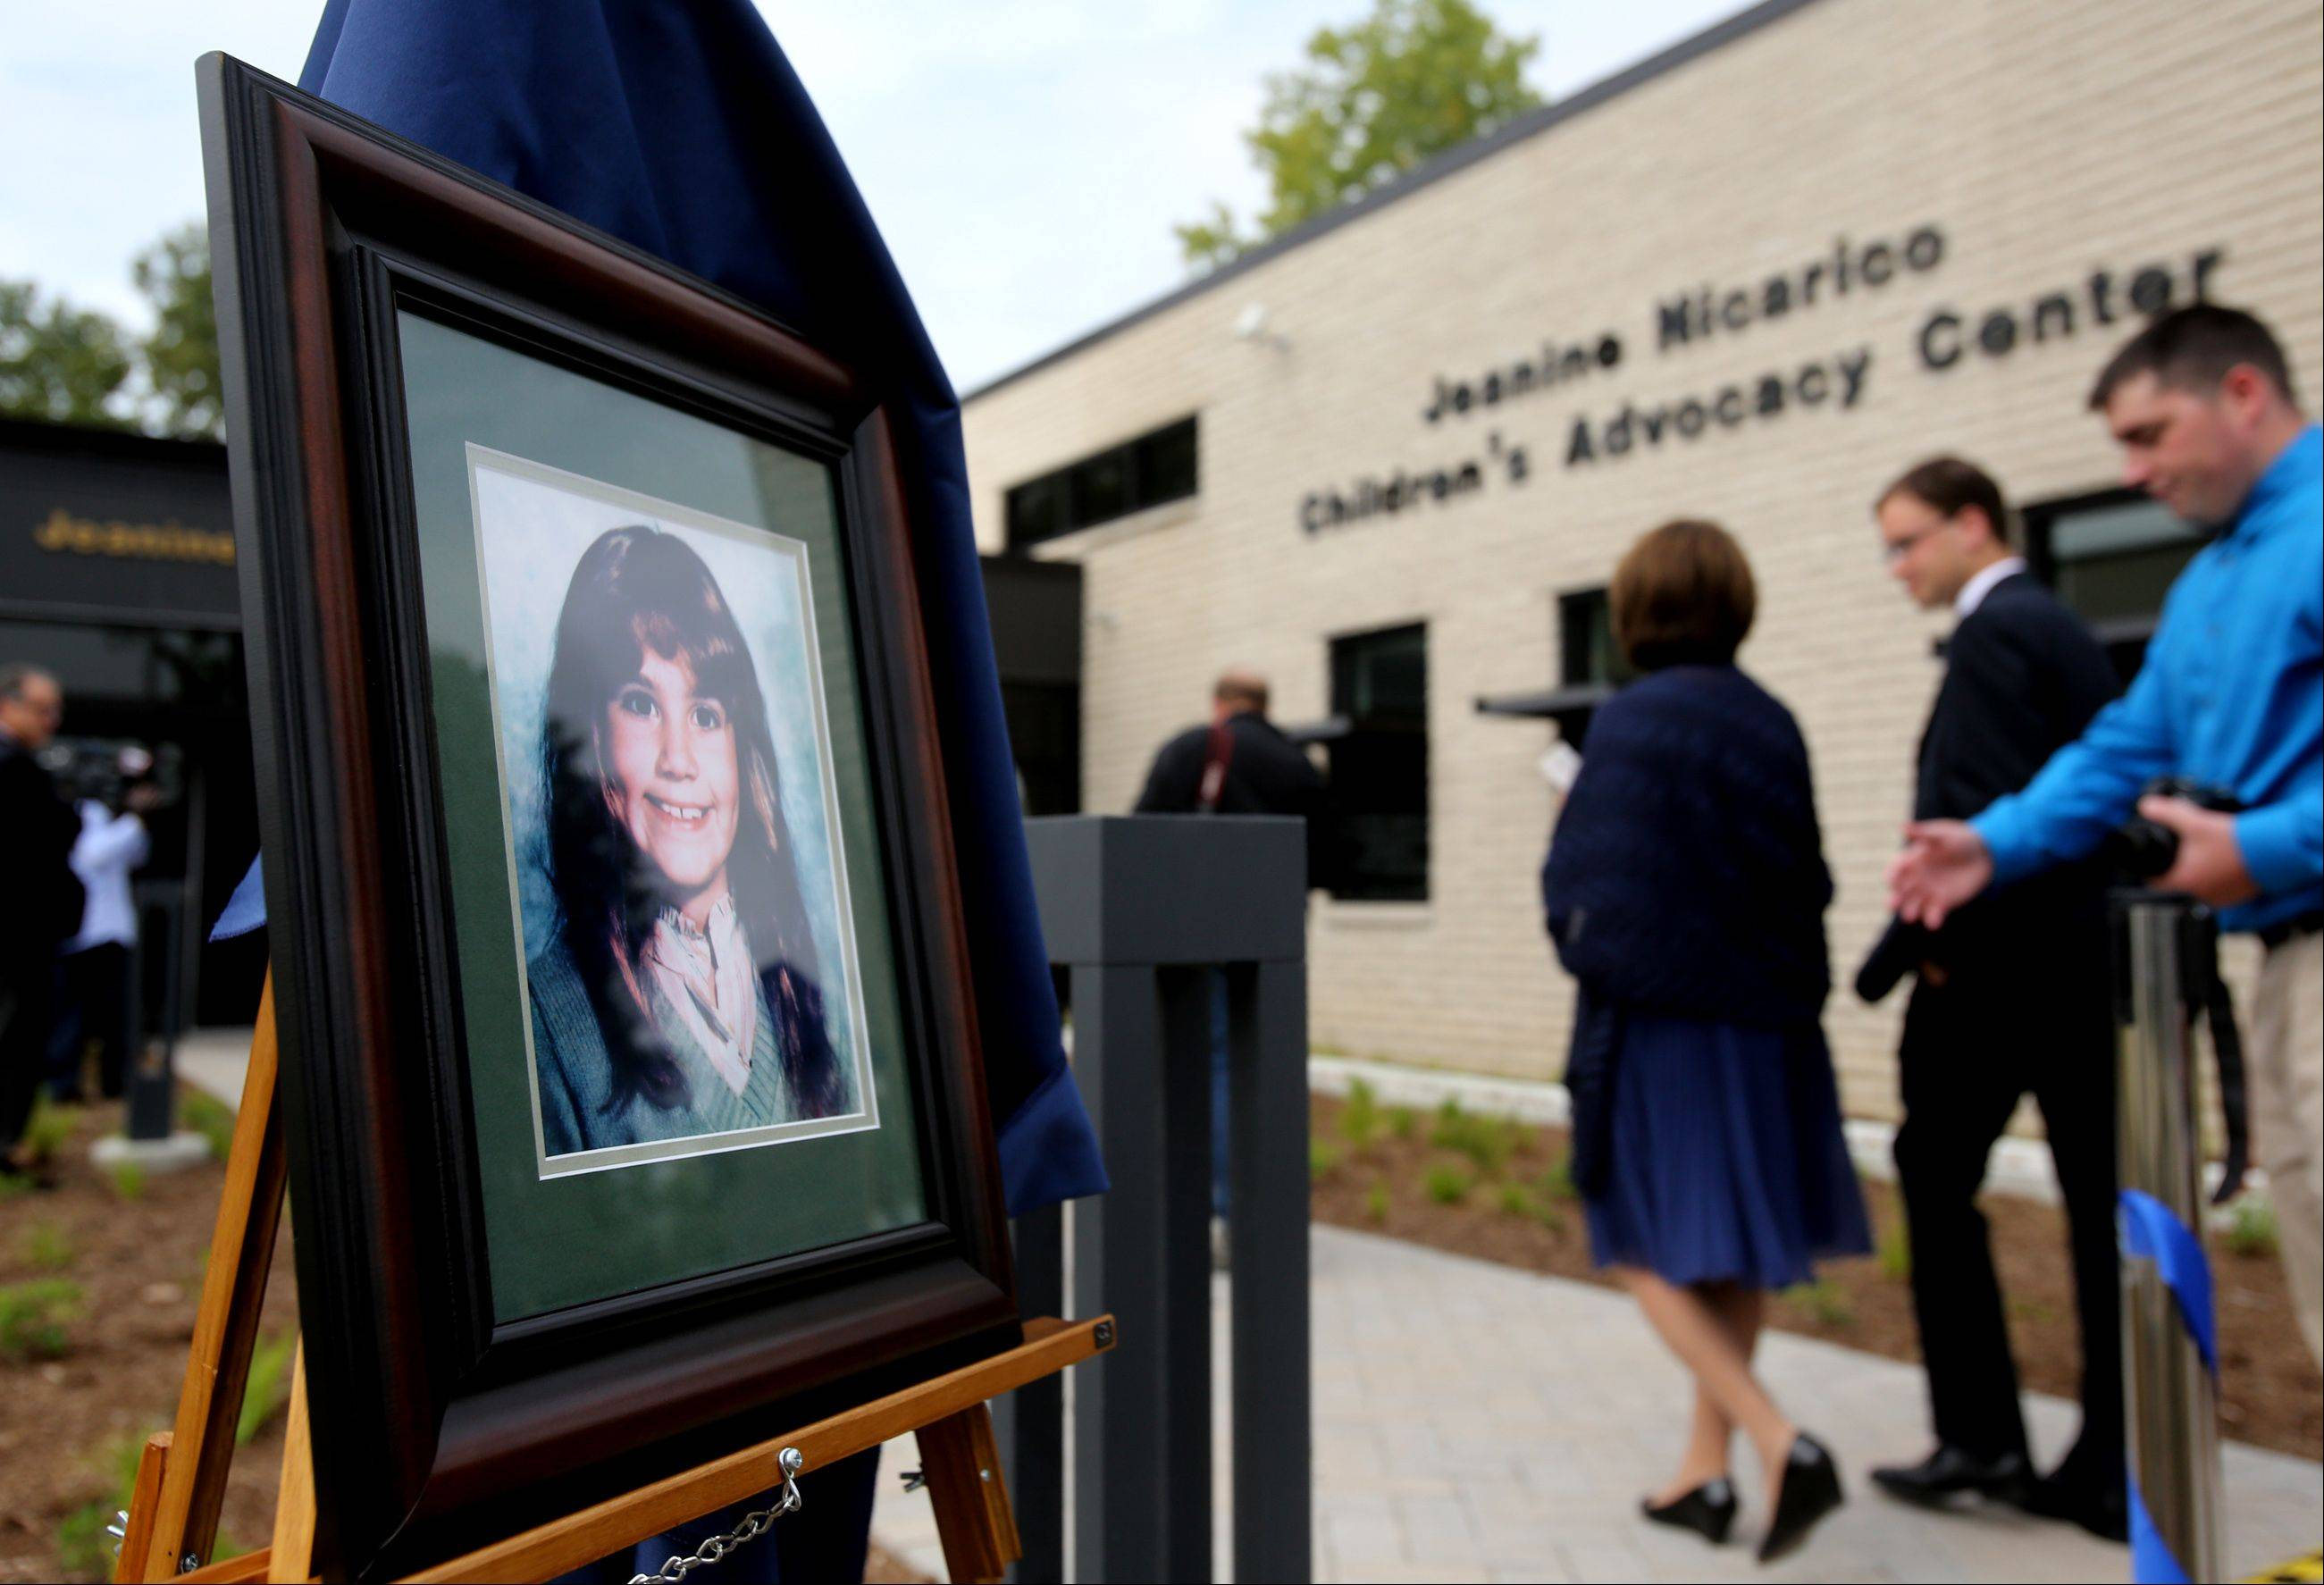 Jeanine Nicarico and her 'endearing, dimpled smile' is memorialized outside the new Jeanine Nicarico Children's Advocacy Center in Wheaton.